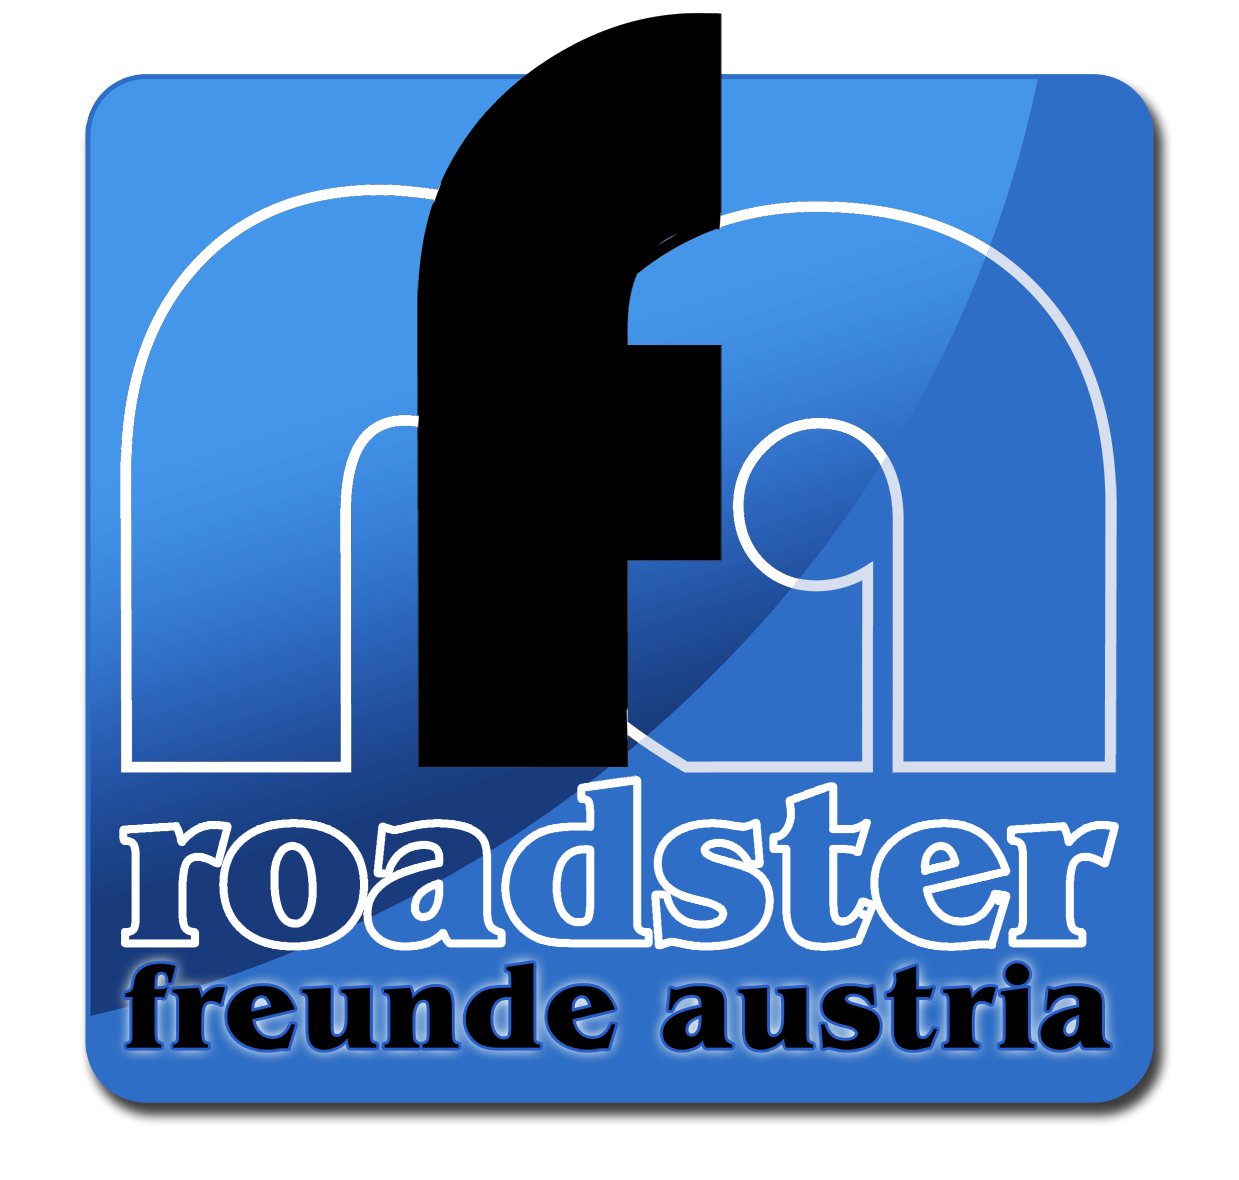 Roadsterfreunde Austria